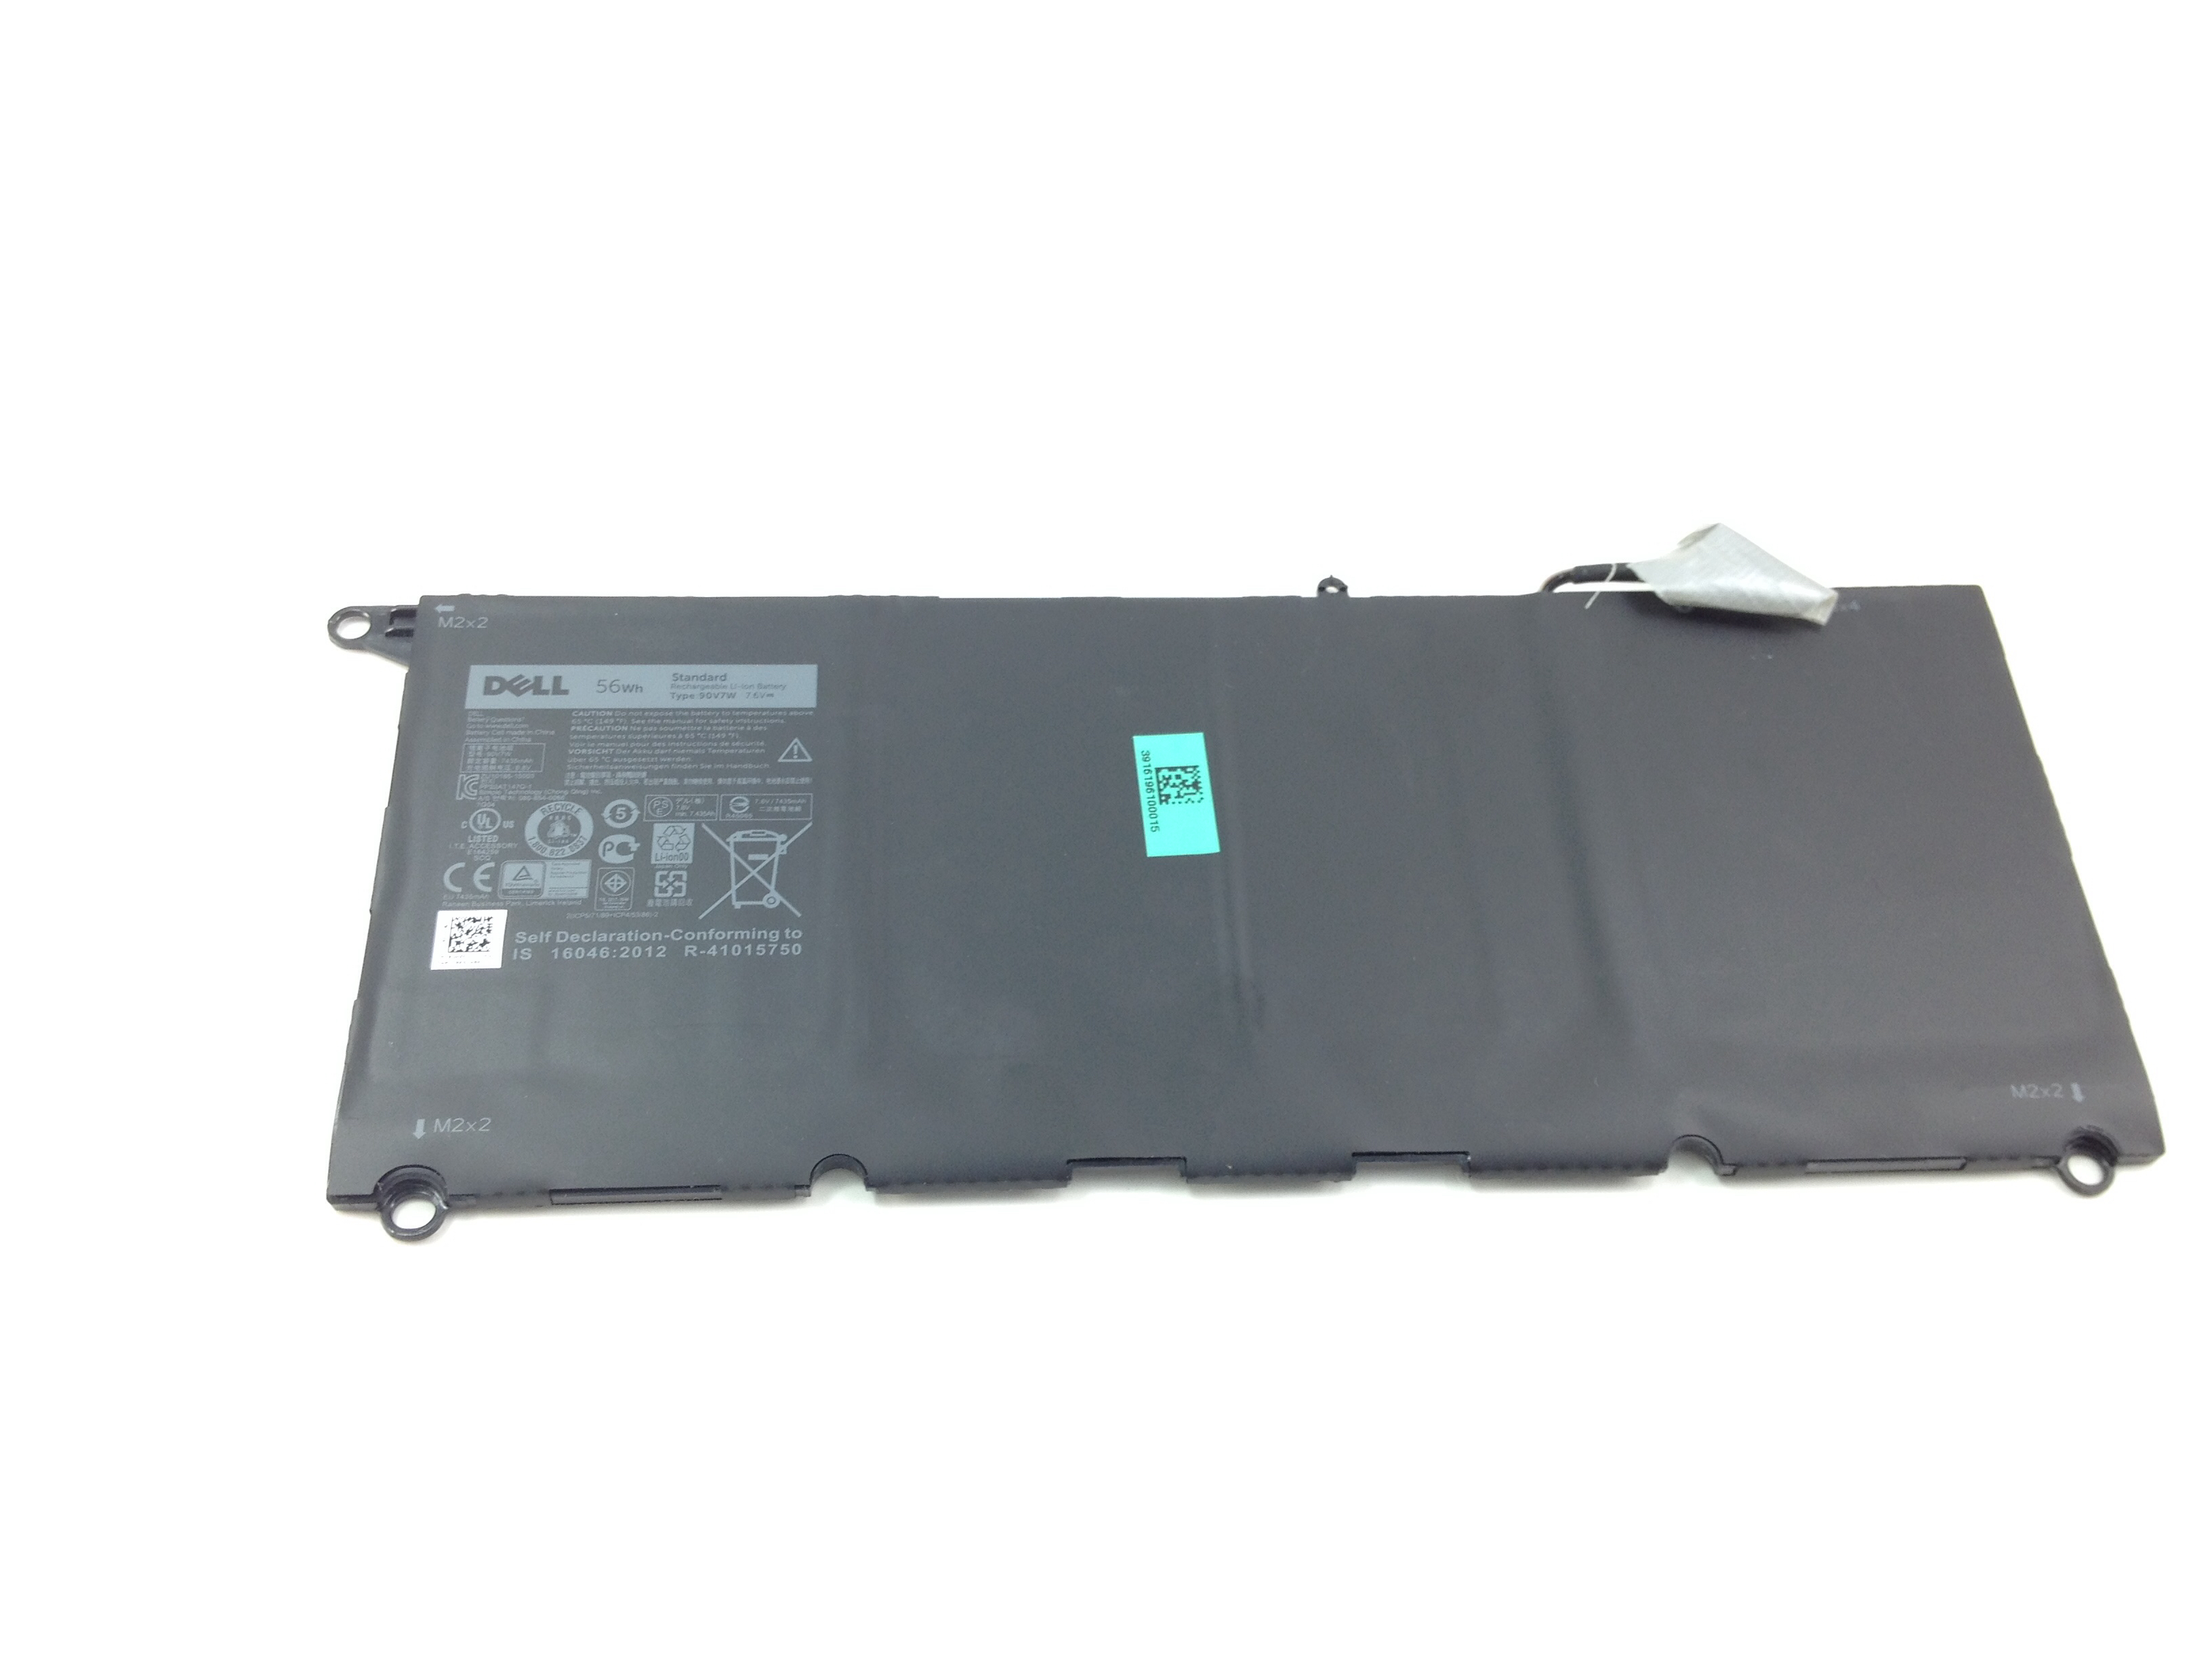 JHXPY Dell XPS 13 56Wh 7.4V Rechargable Li-Ion Battery (JHXPY)